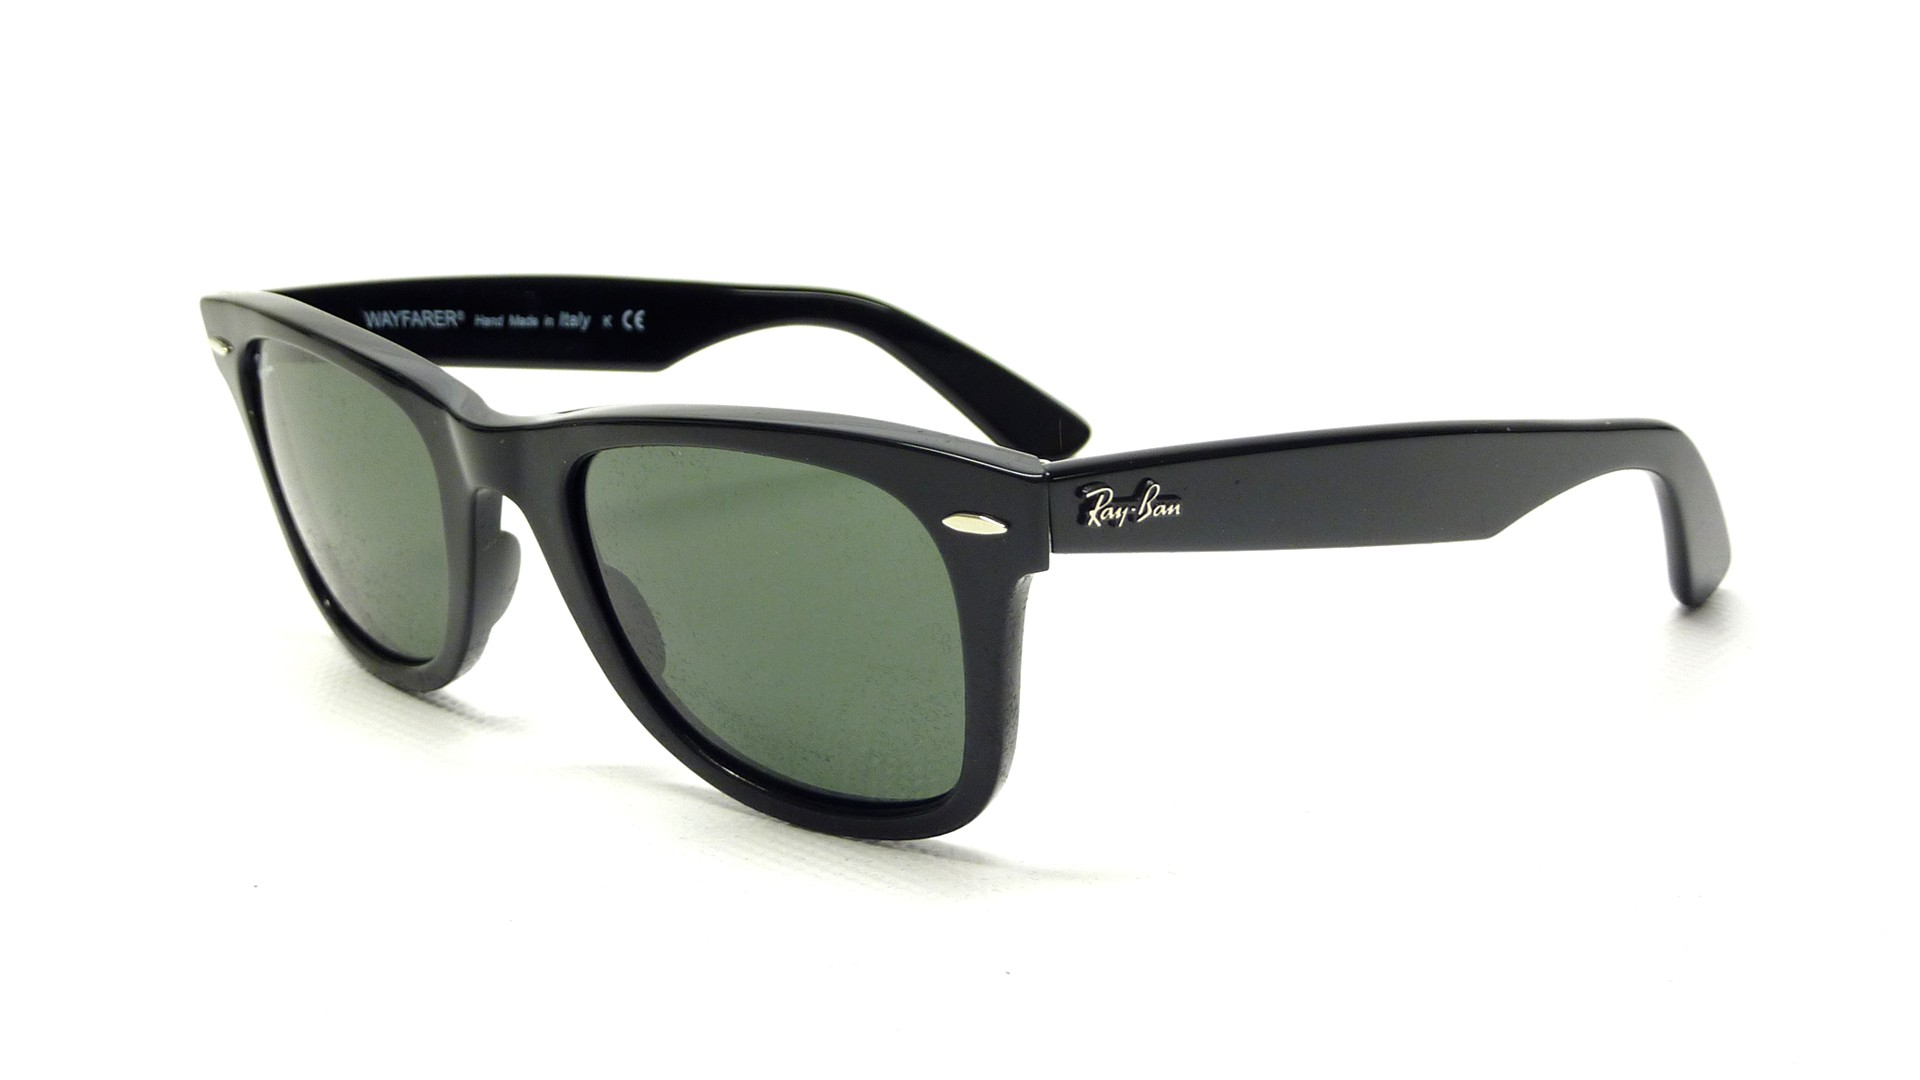 3b950a2e266cd Sunglasses Ray-Ban Original Wayfarer Black RB2140 901 54-18 Large